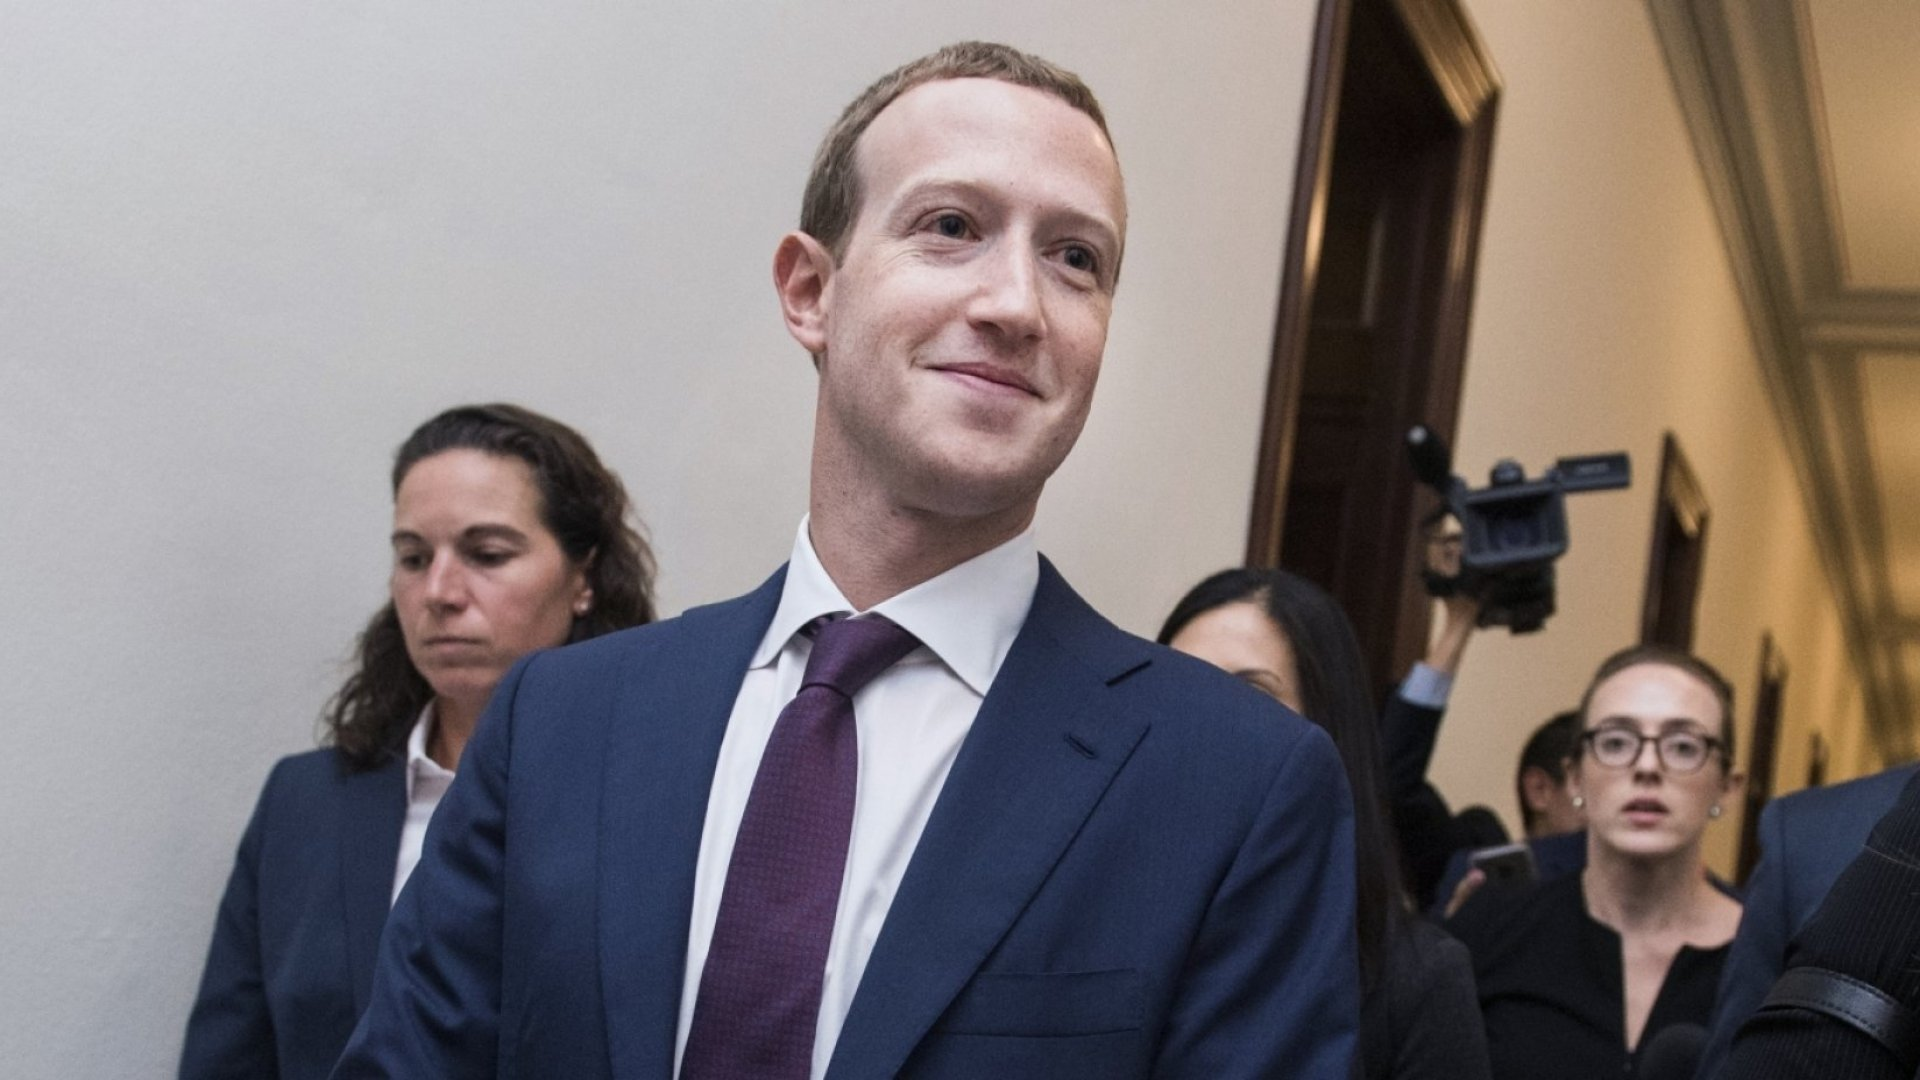 Mark Zuckerberg Just Told Us What He Really Thinks. Here's What He Said That Should Worry You Most